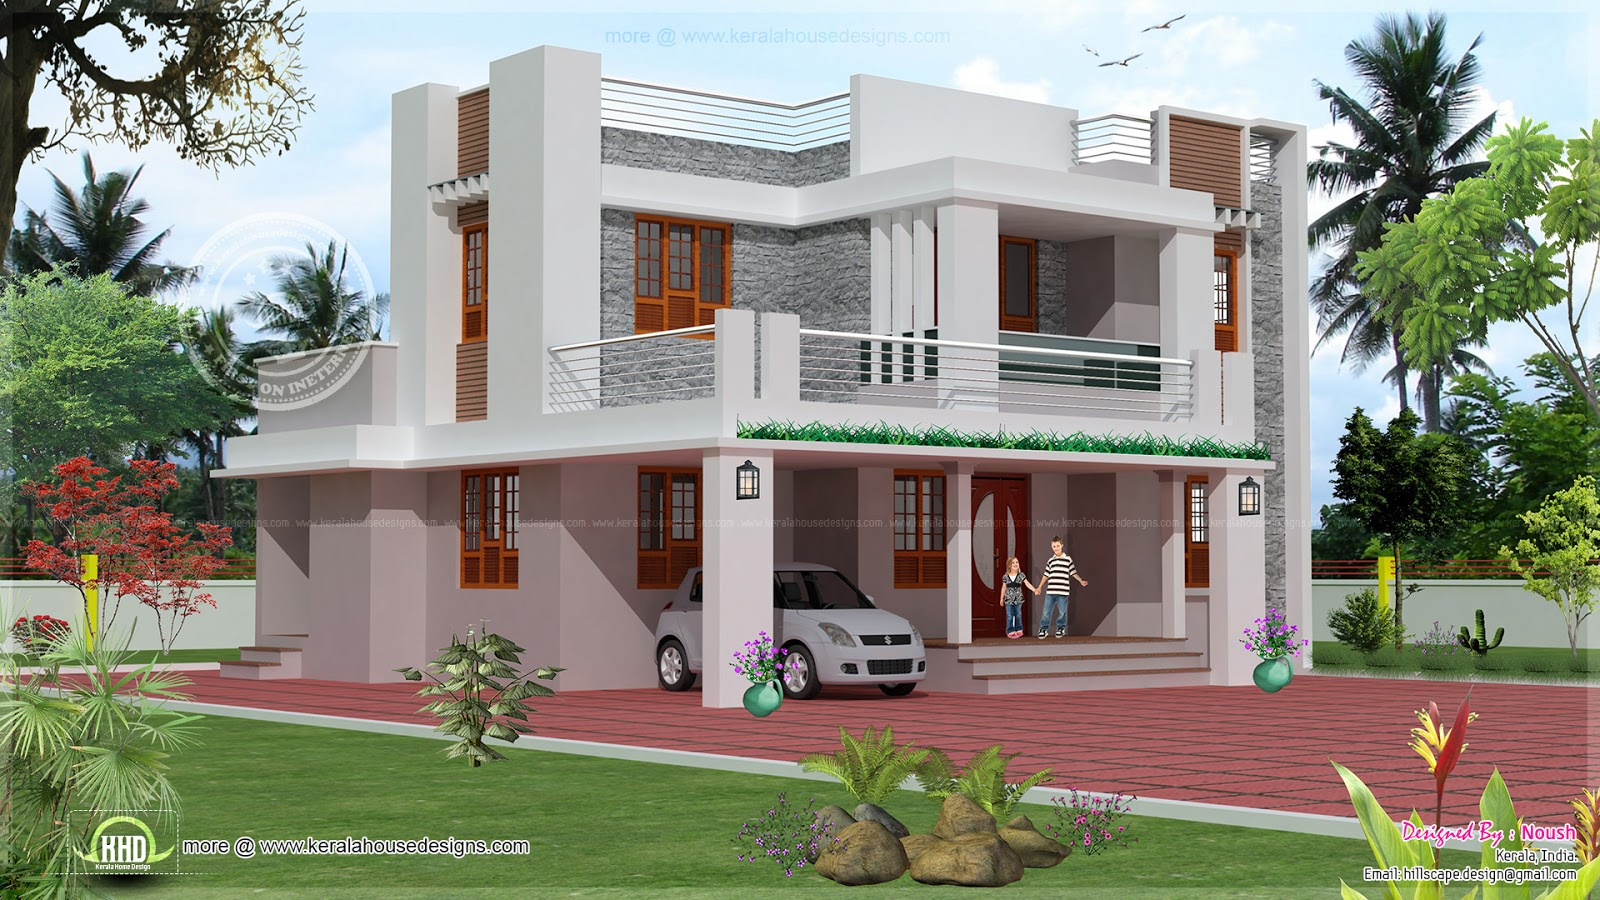 Fabulous 4 Bedroom 2 Story House Plans 1600 x 900 · 418 kB · jpeg